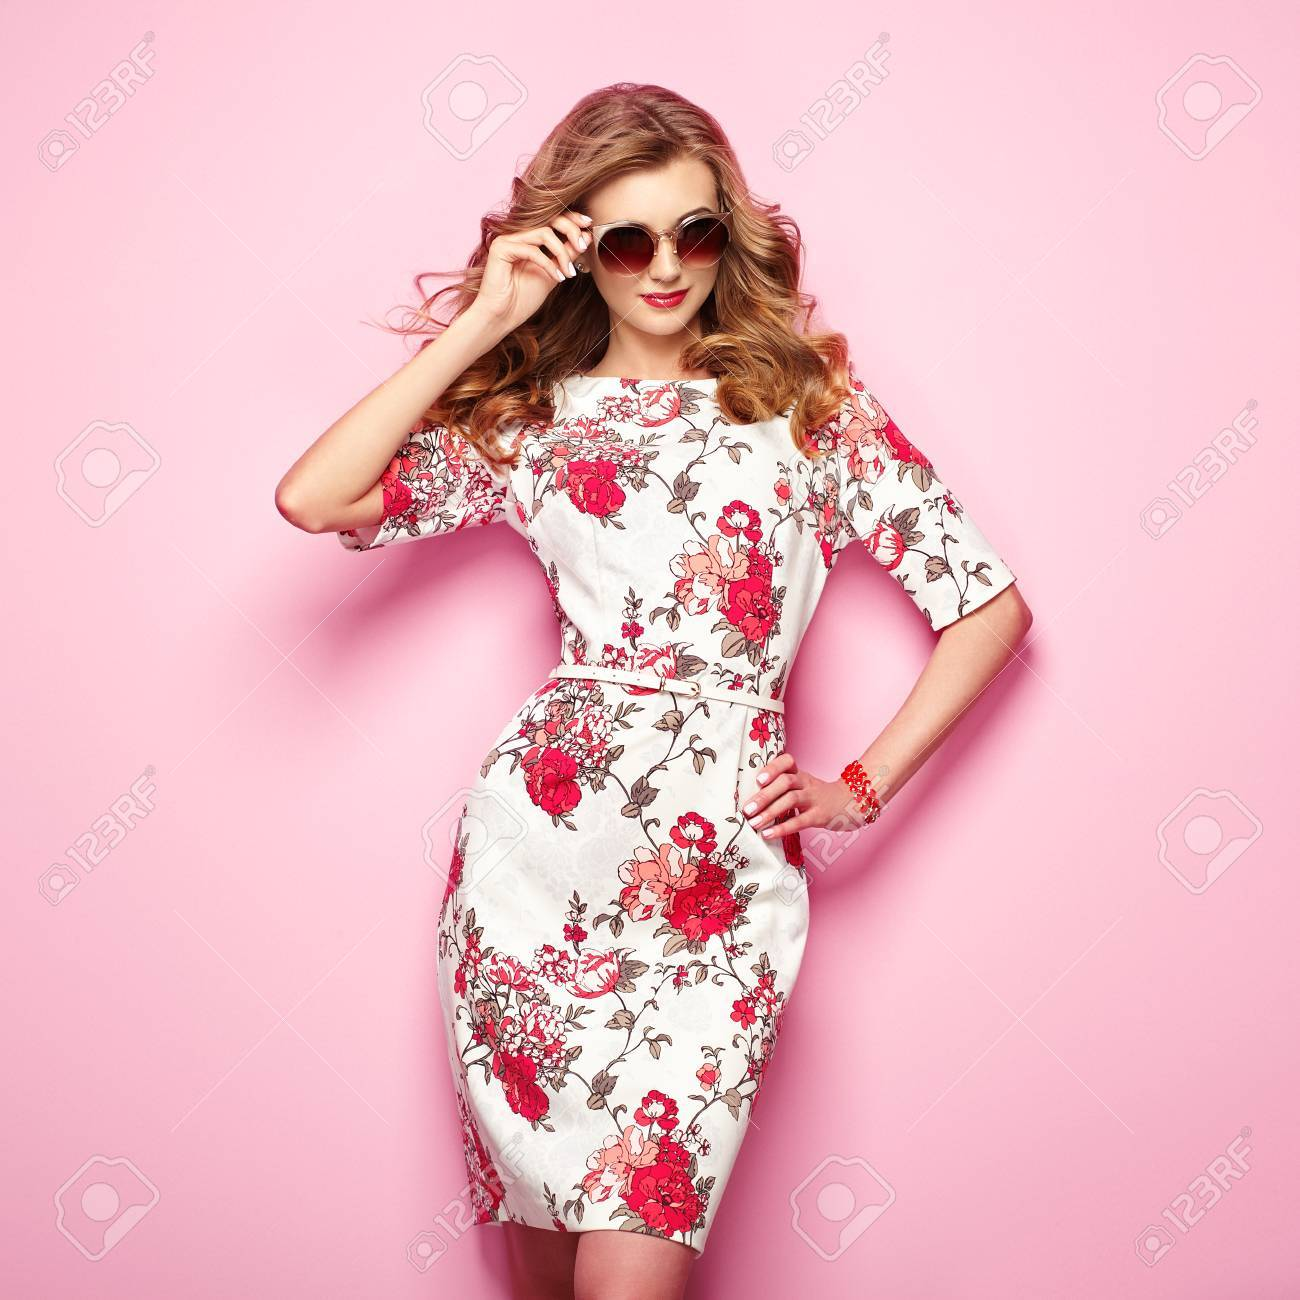 Blonde young woman in floral spring summer dress. Girl posing on a pink background. Summer floral outfit. Stylish wavy hairstyle. Fashion photo. Glamour lady in stylish sunglasses - 75986989